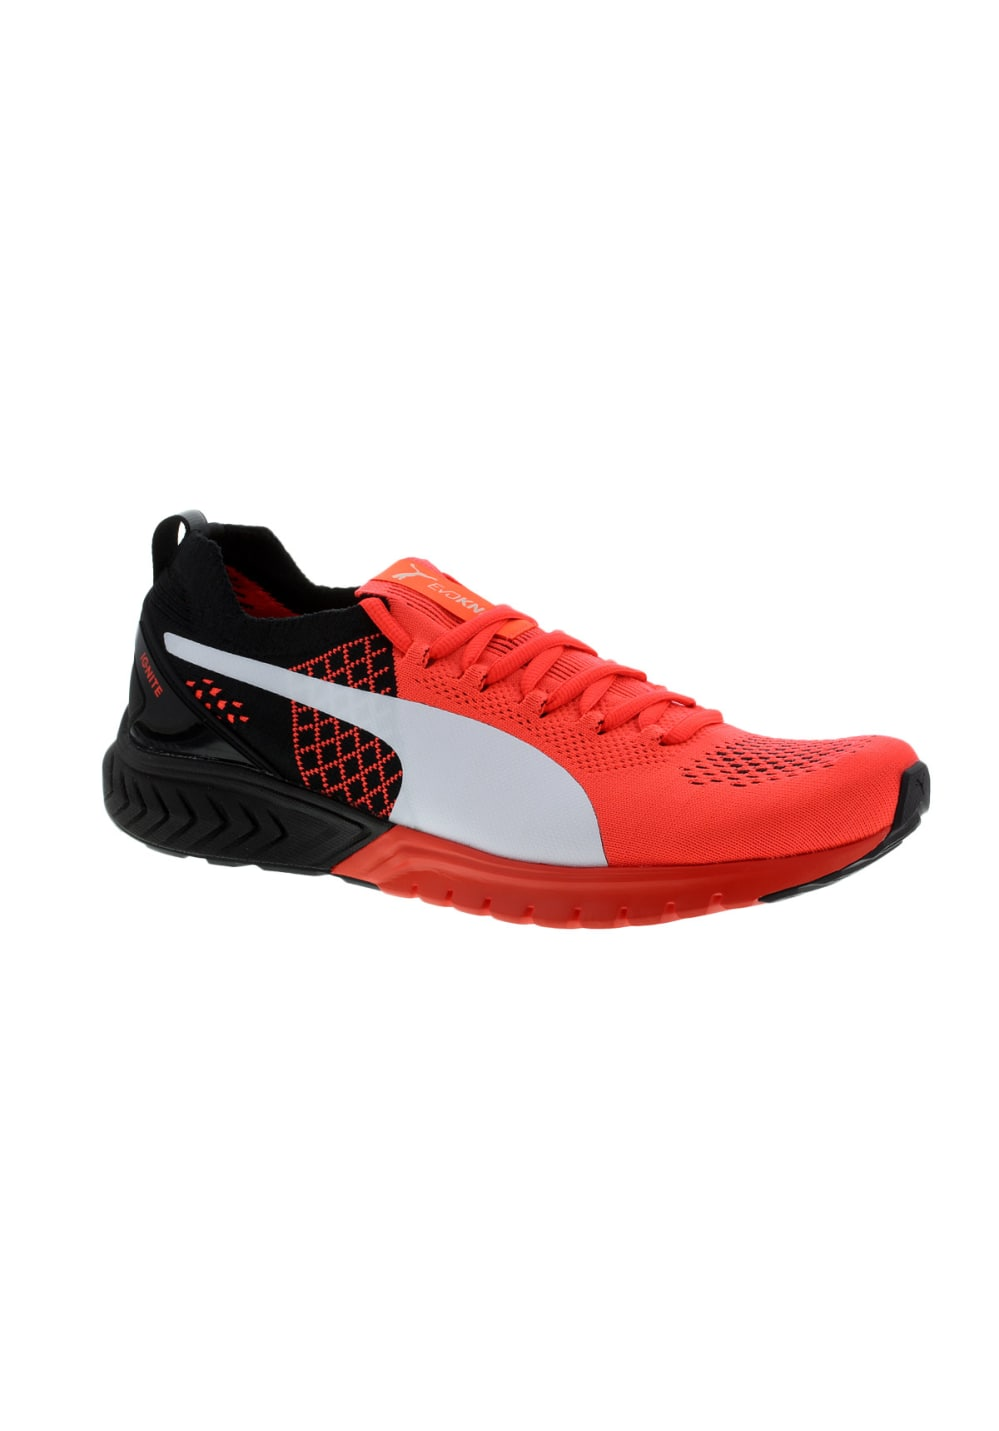 Evoknit Chaussures Pour Ignite Dual Rouge Puma Homme Running xWBQredCo